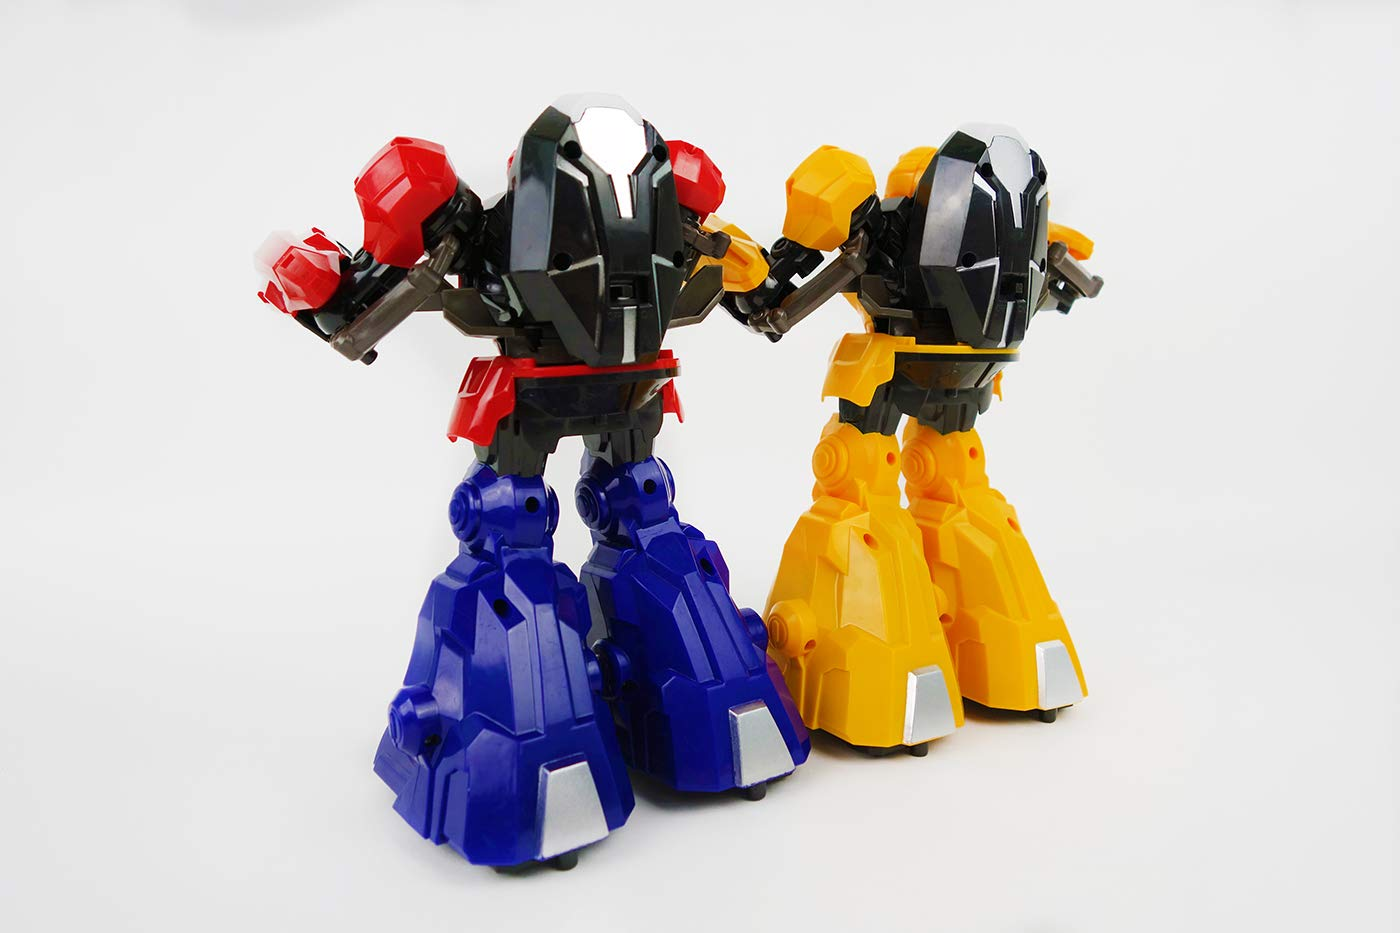 NBD Corp Real Hero- Infrared Fighting Robots A Fun Toy For Boys And Girls This Is A Very Exciting Toy For Kids This Really Rad Robot Is A Super Fun Boxing Robot And The Hero You've Been Looking For by NBD Corp (Image #5)